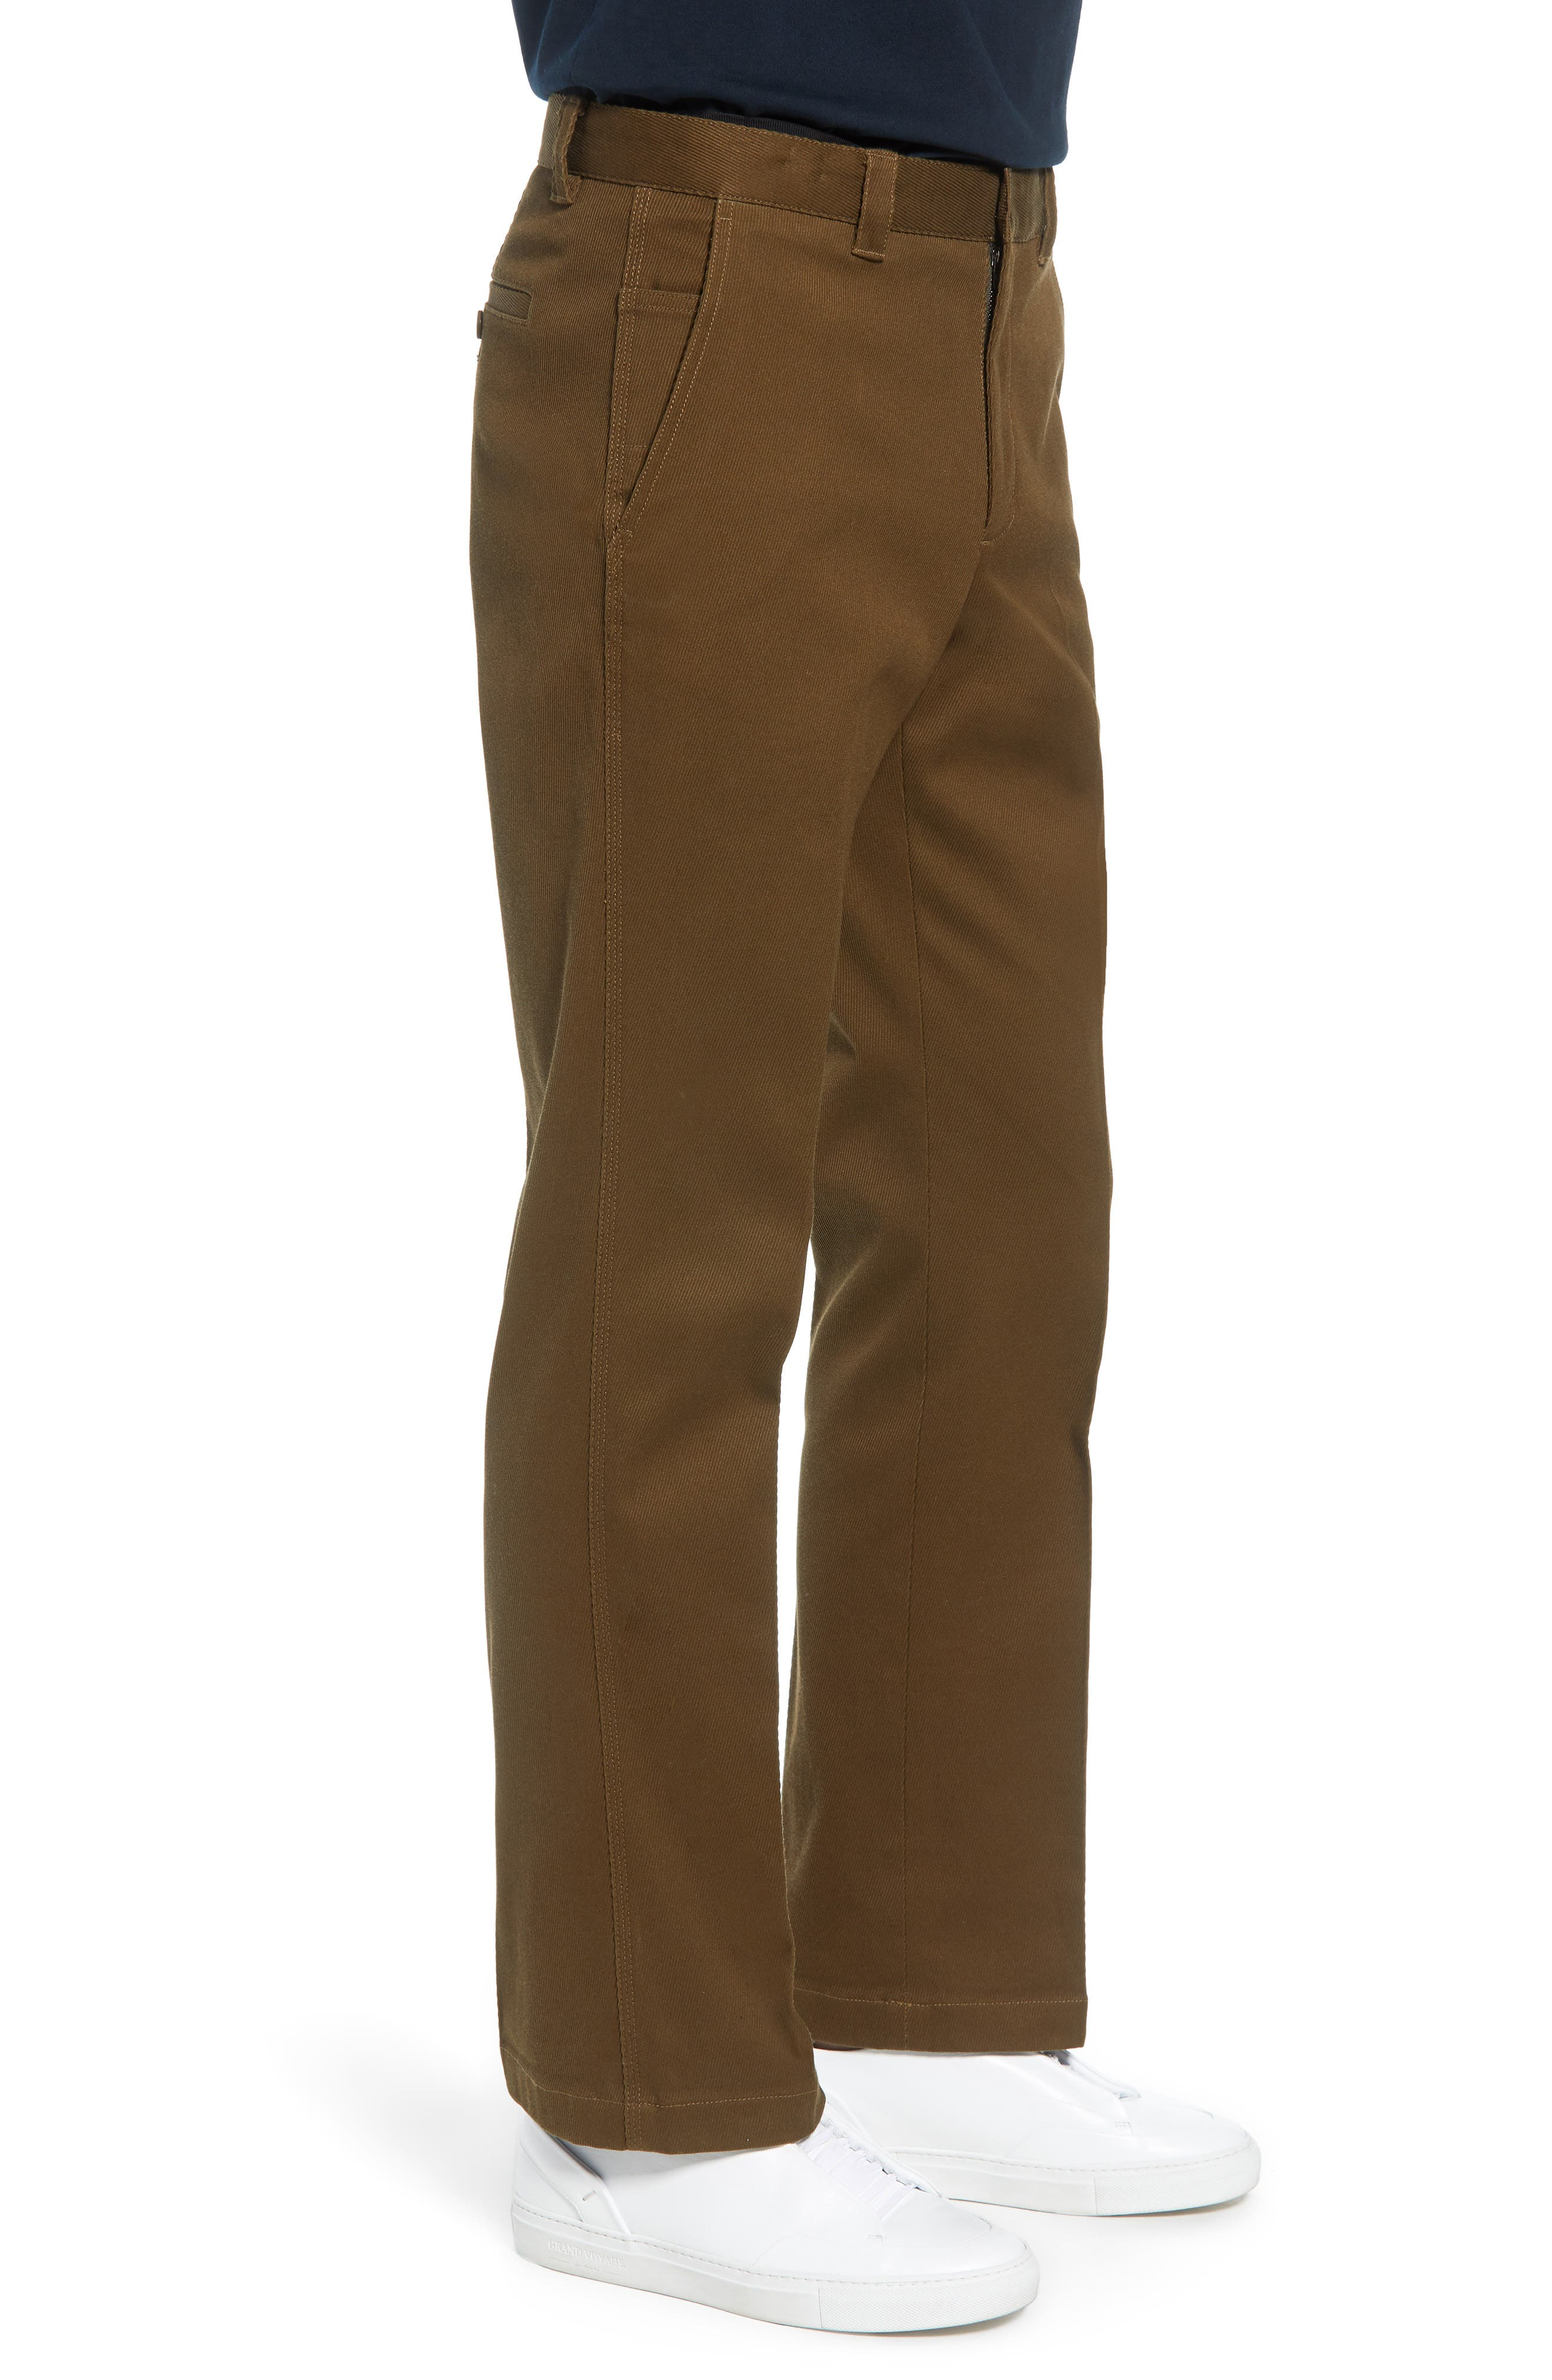 Stay Pressed Classic Fit Pants,                             Alternate thumbnail 3, color,                             INFANTRY GREEN